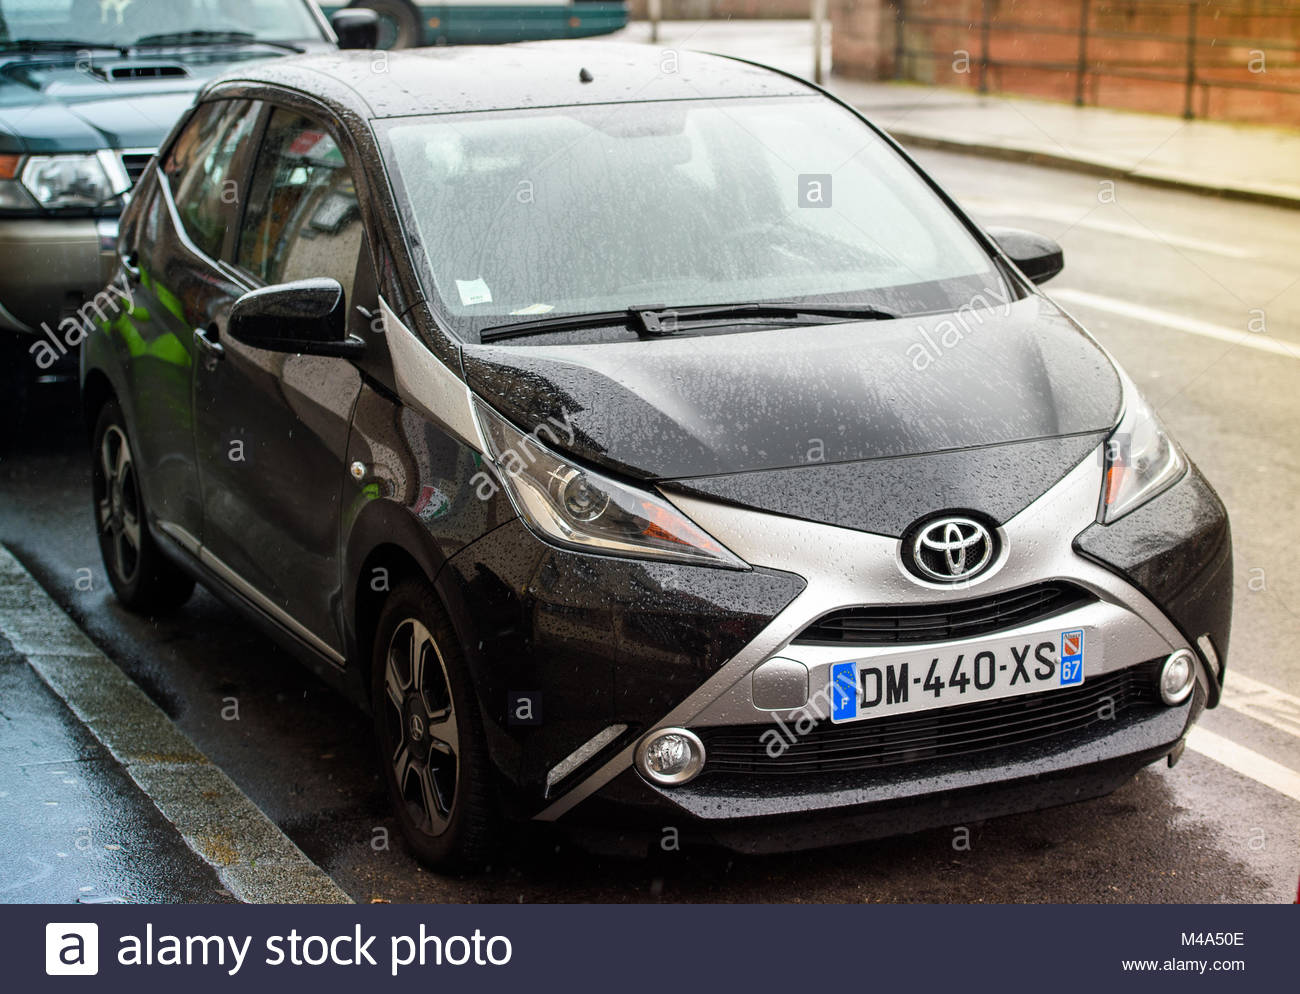 Toyota Aygo Two Door Car Parked In Urban Enviroment   Stock Image